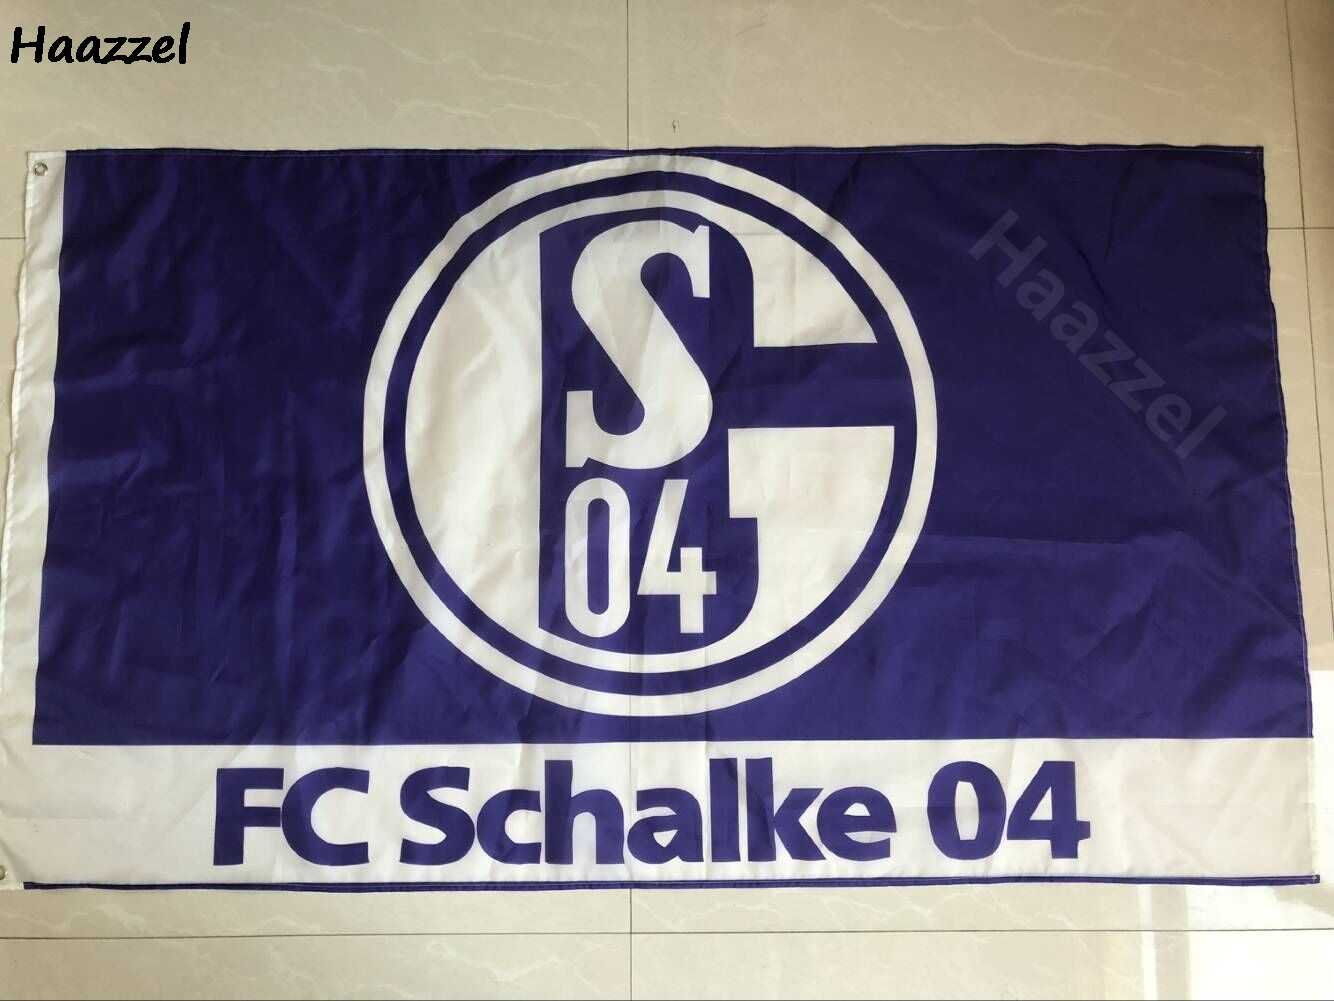 Germany Bundesliga Fc Gelsenkirchen Schalke 04 3ft 5ft 90 150cm Size Christmas Decorations For Home Flag Banner Gifts Flags Banners Accessories Aliexpress